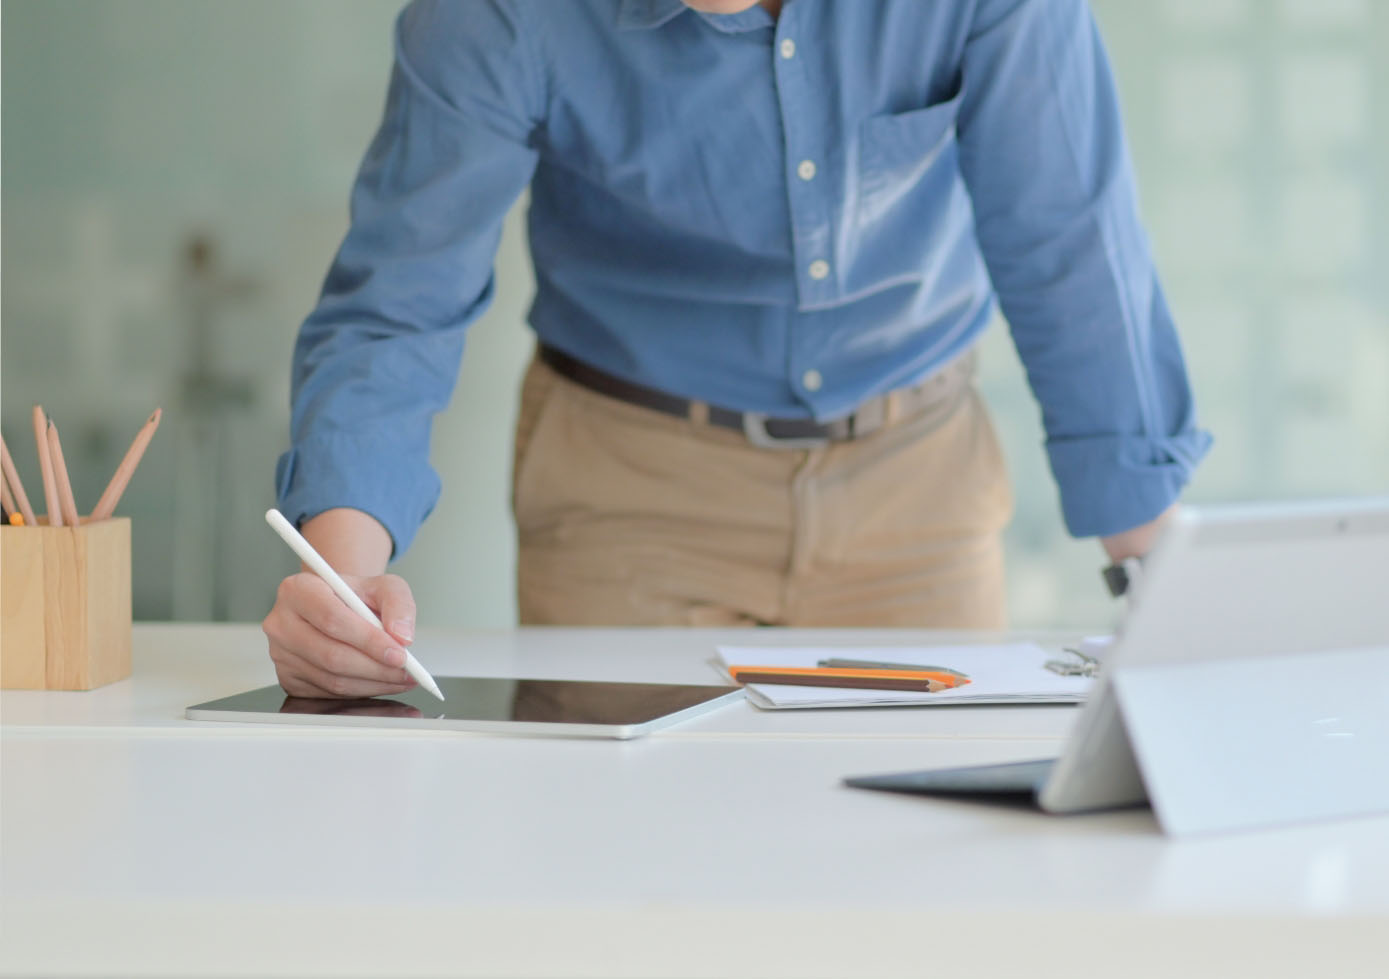 A man stands in front of desk, working with a digital pen on a tablet while reviewing work on a fold-out laptop.